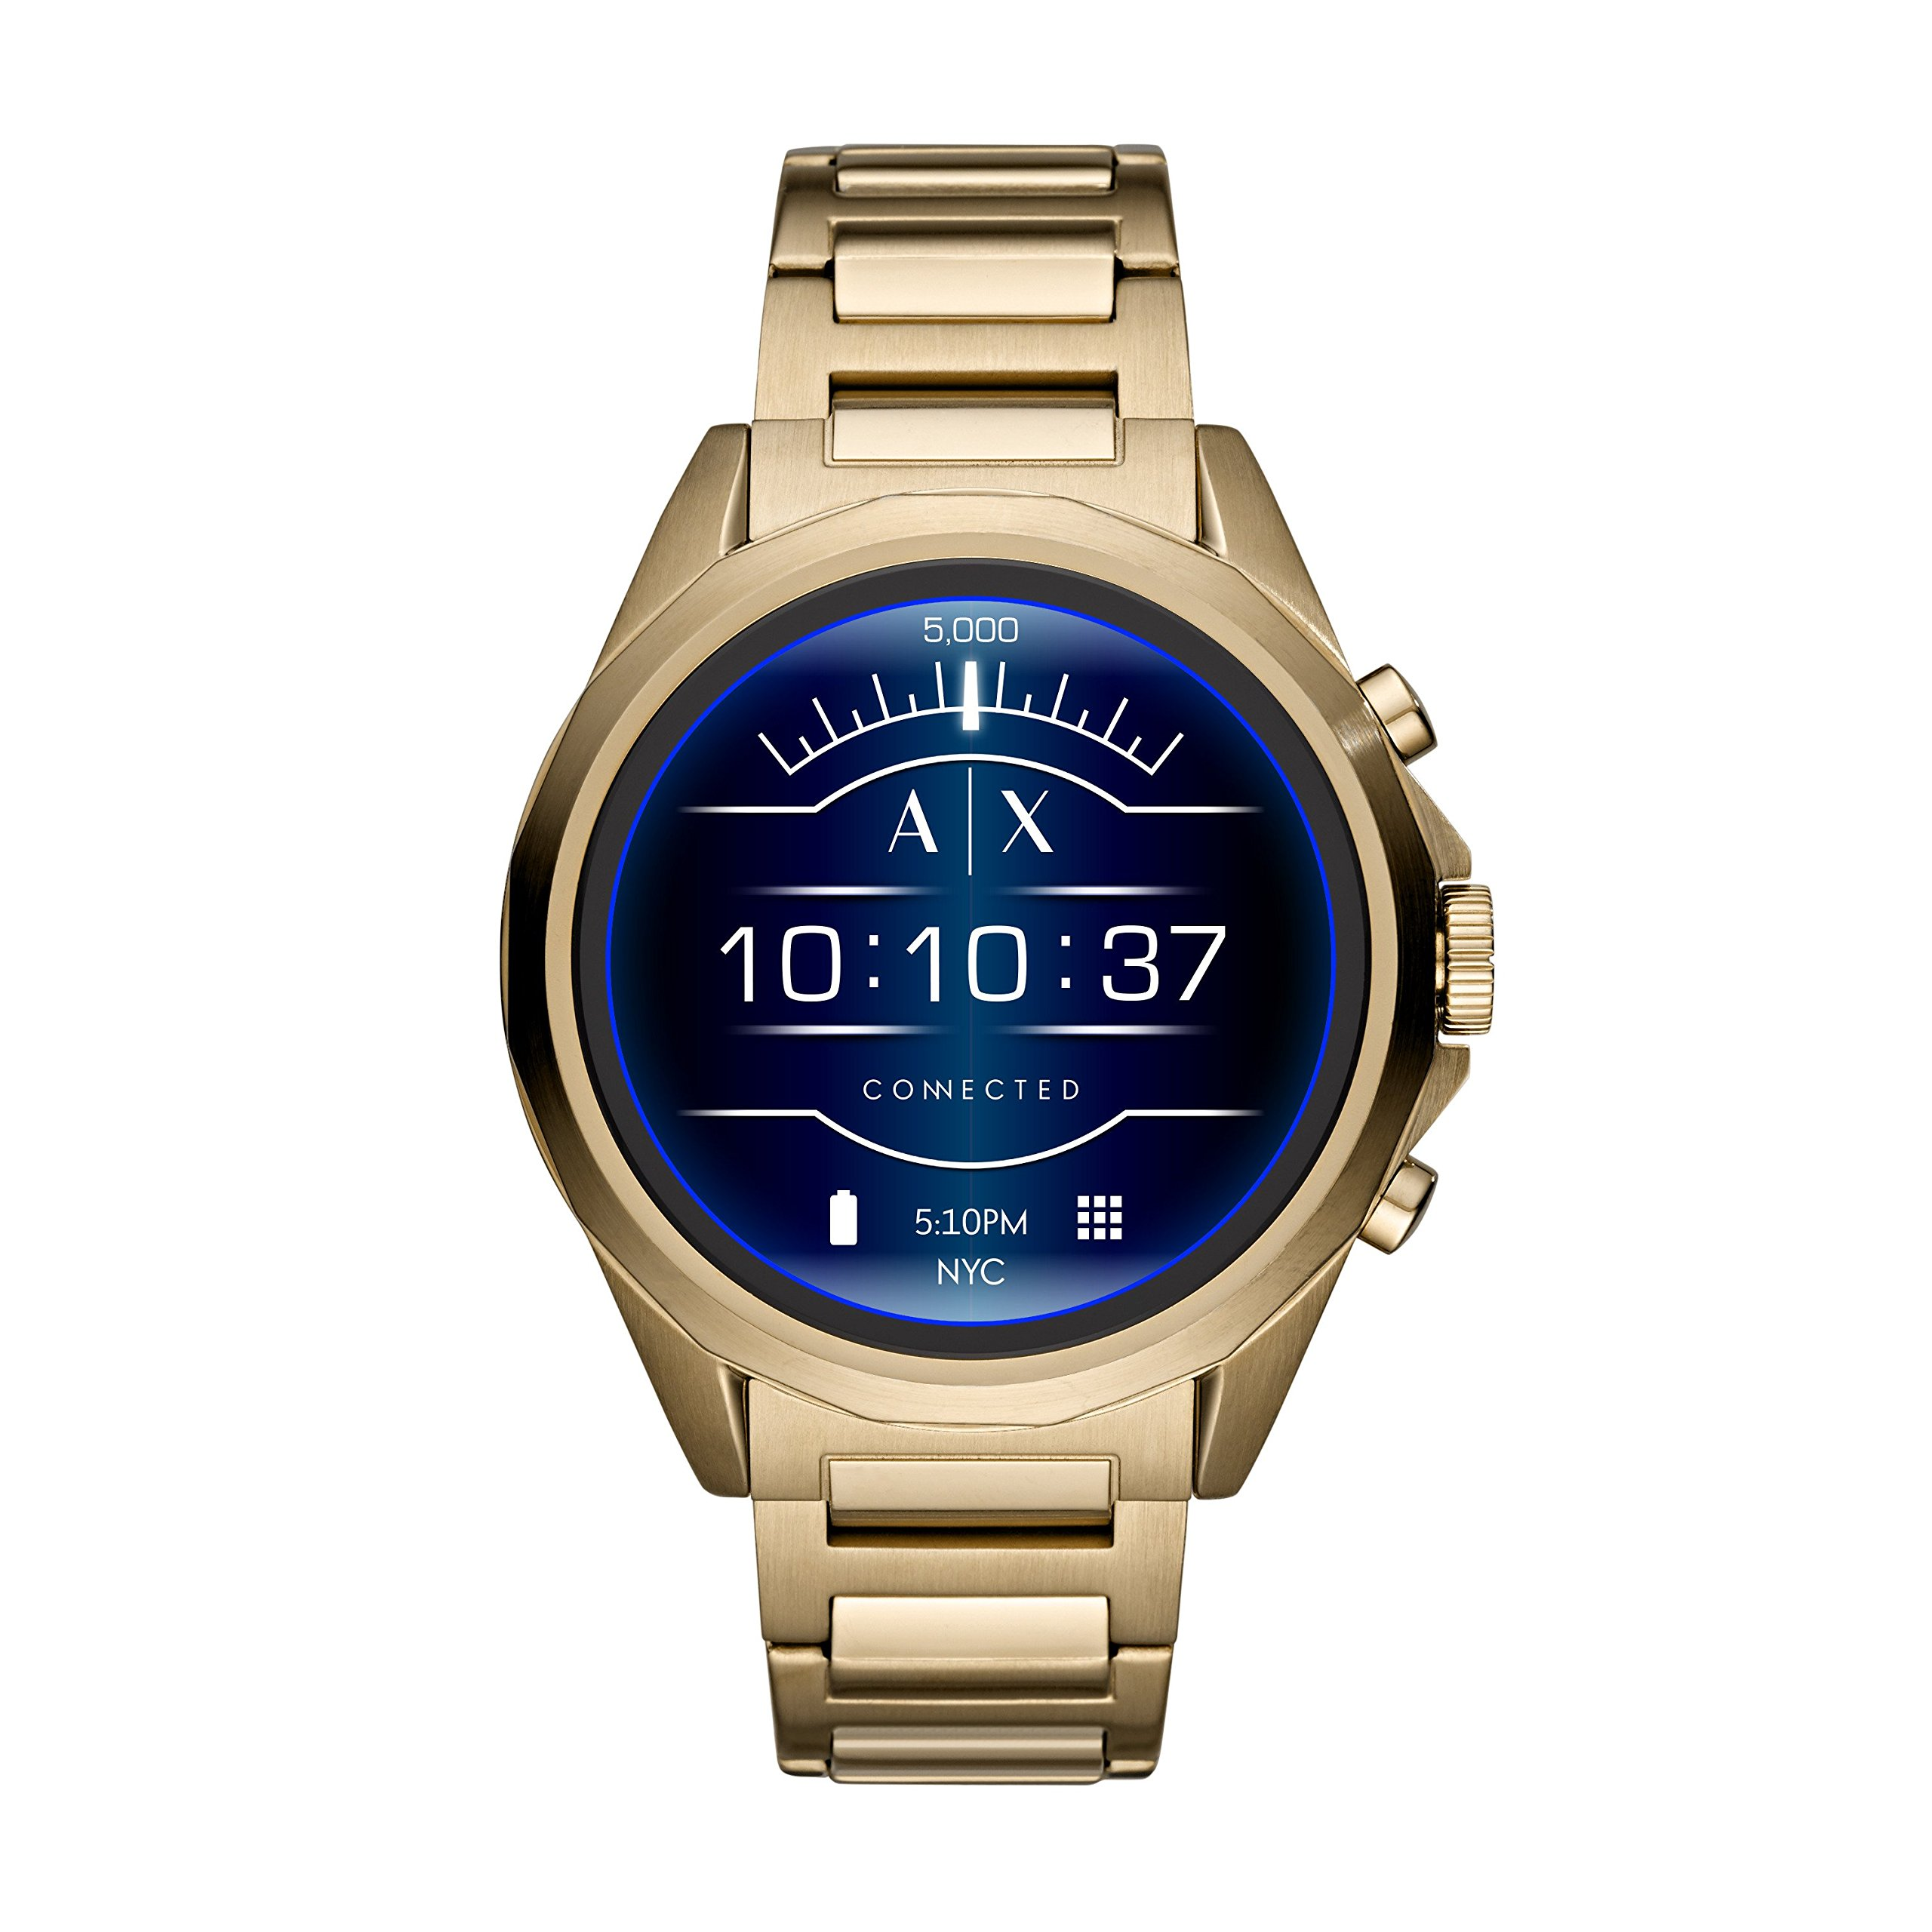 Armani Exchange Men's AXT2001 Smartwatch Digital Display Analog Quartz Gold Watch